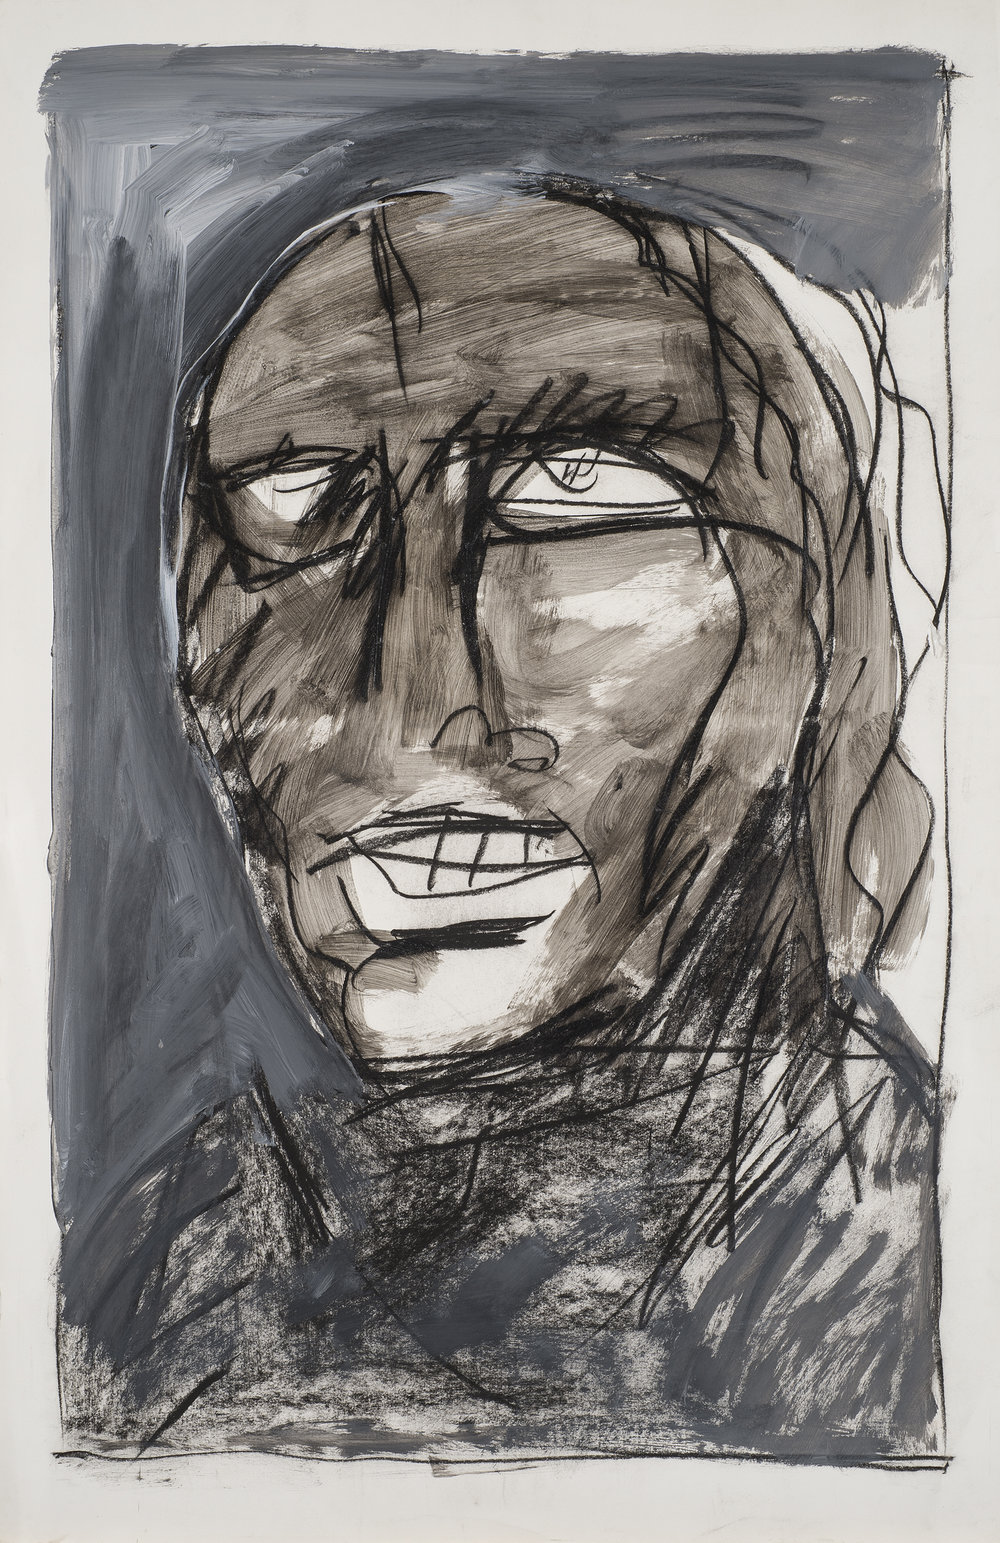 Untitled , 1984-85 Acrylic, charcoal on paper 23 x 31 in. (78 x 58 cm.) Photography courtesy of Paul Mutino